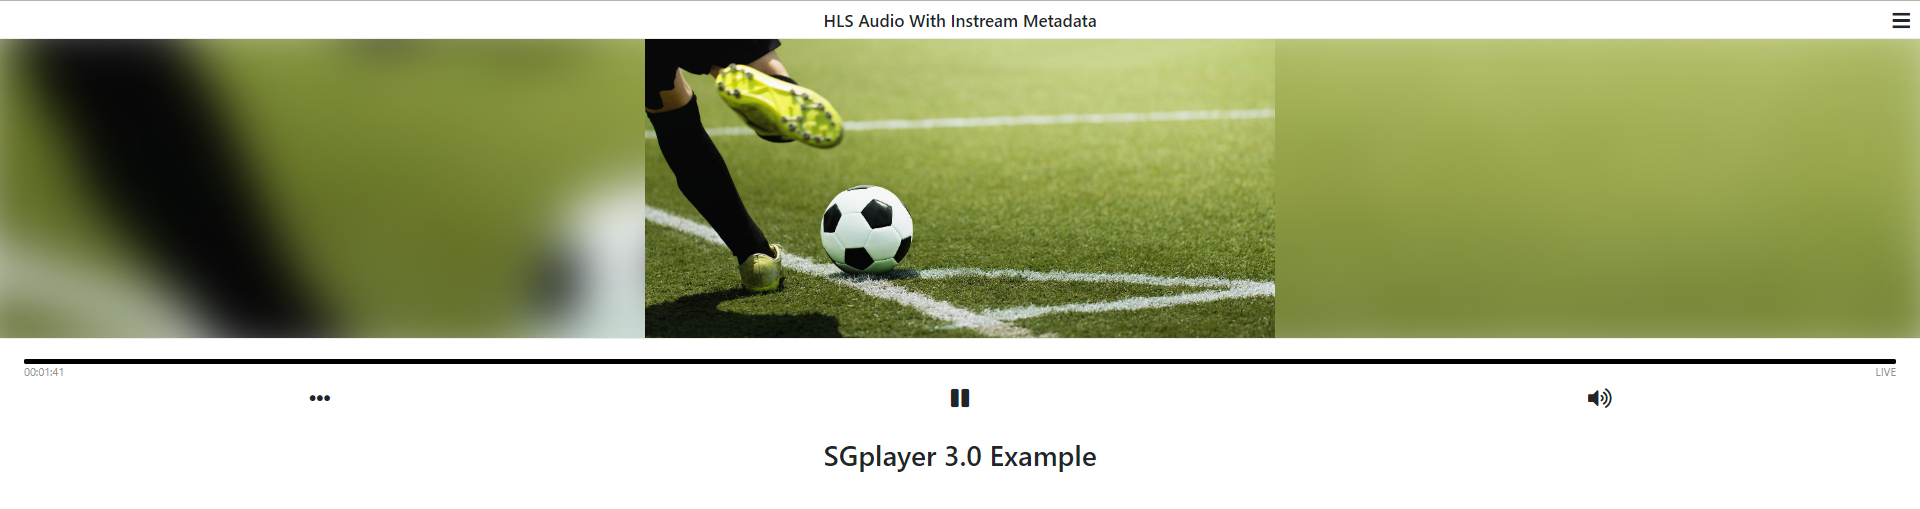 StreamGuys releases SGplayer 3.0